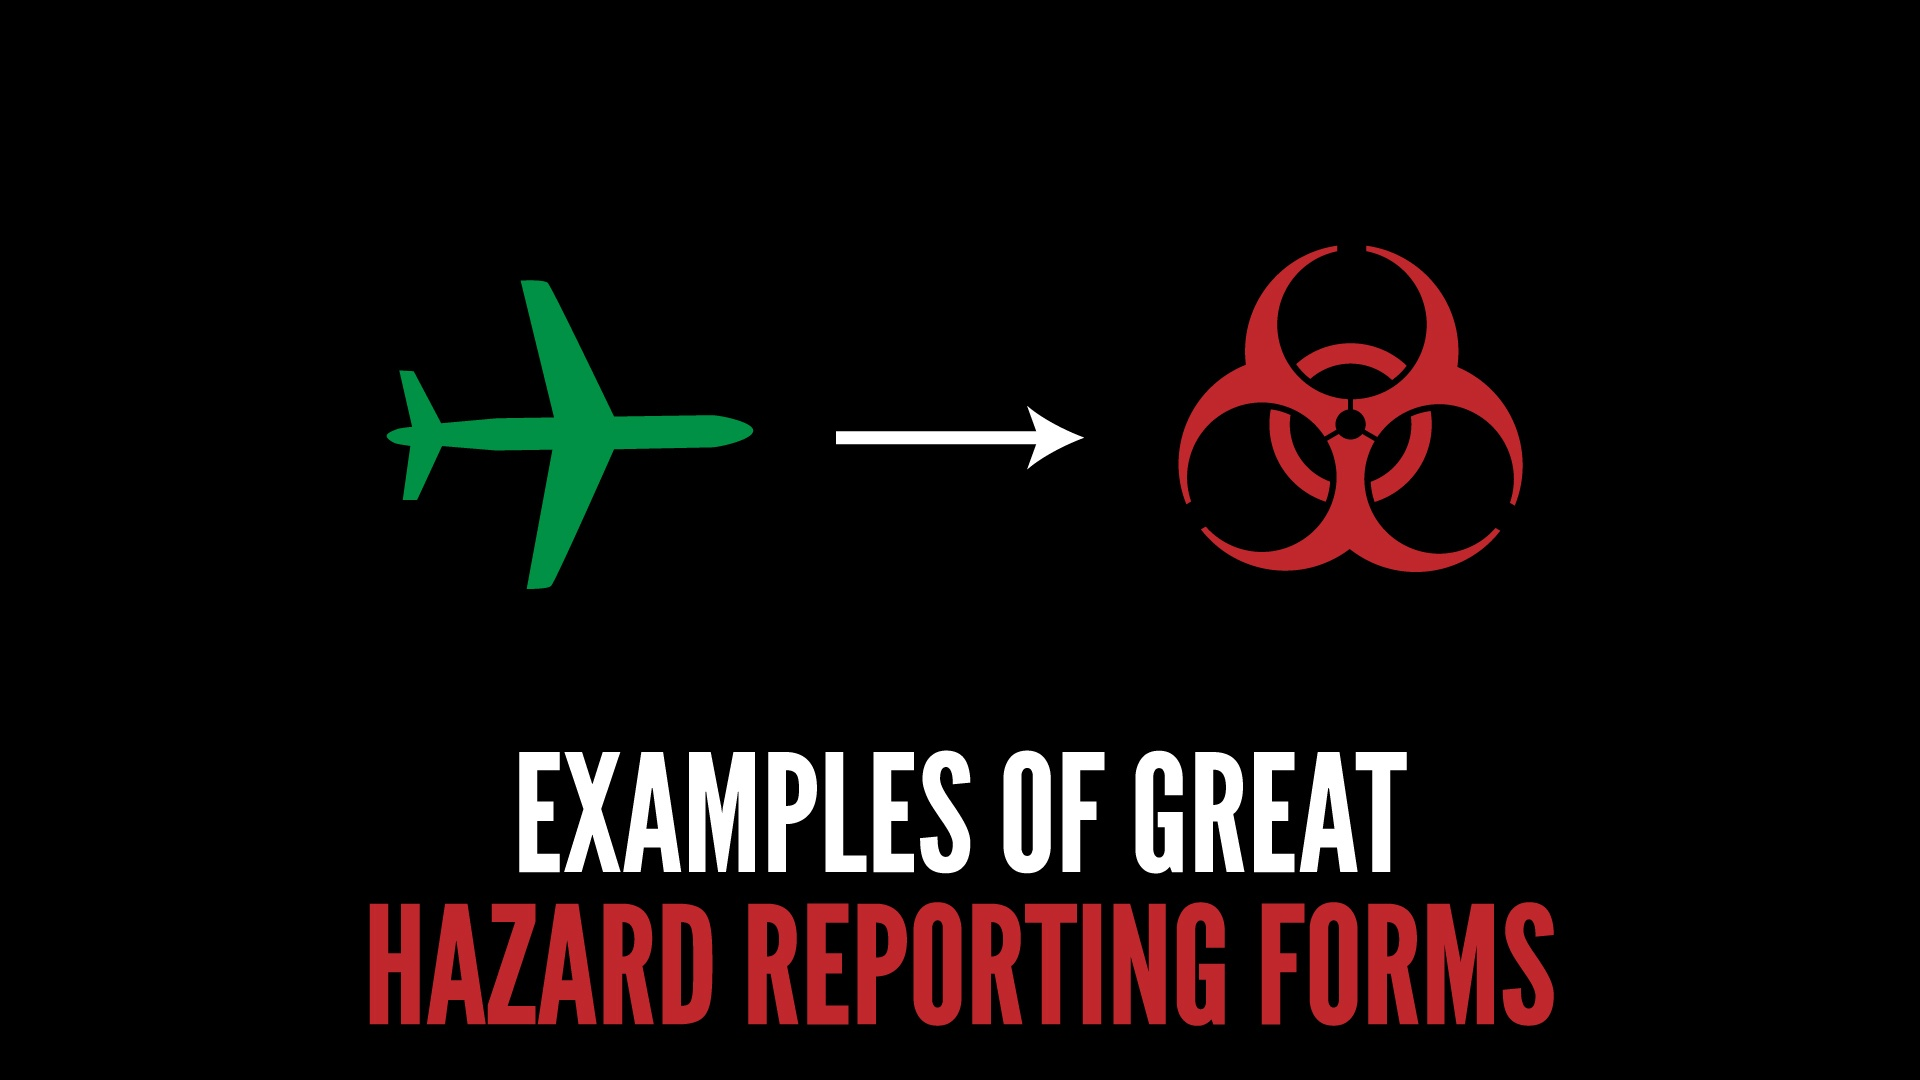 Examples of great hazard reporting forms in aviation safety